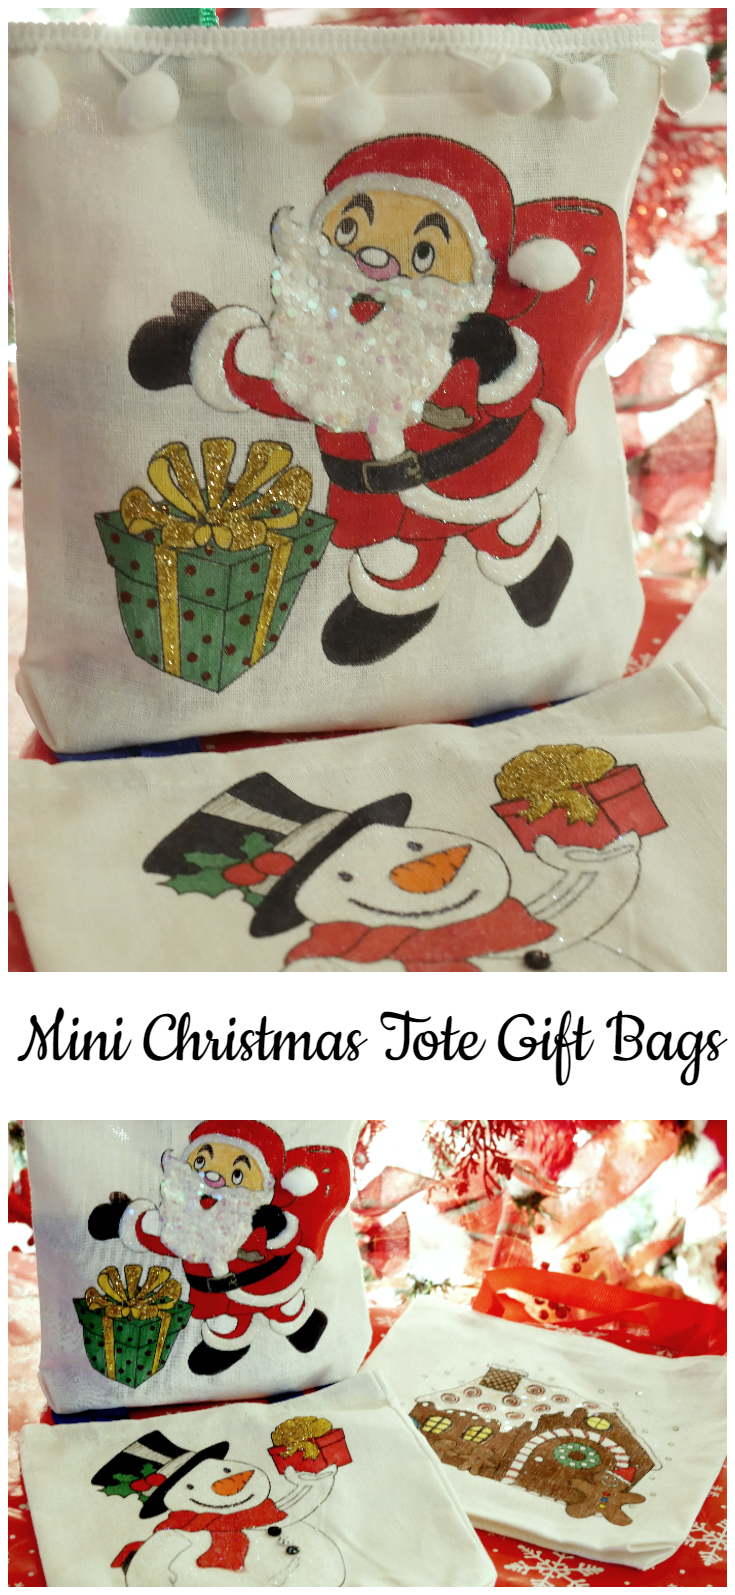 Mini Christmas Tote Gift Bags